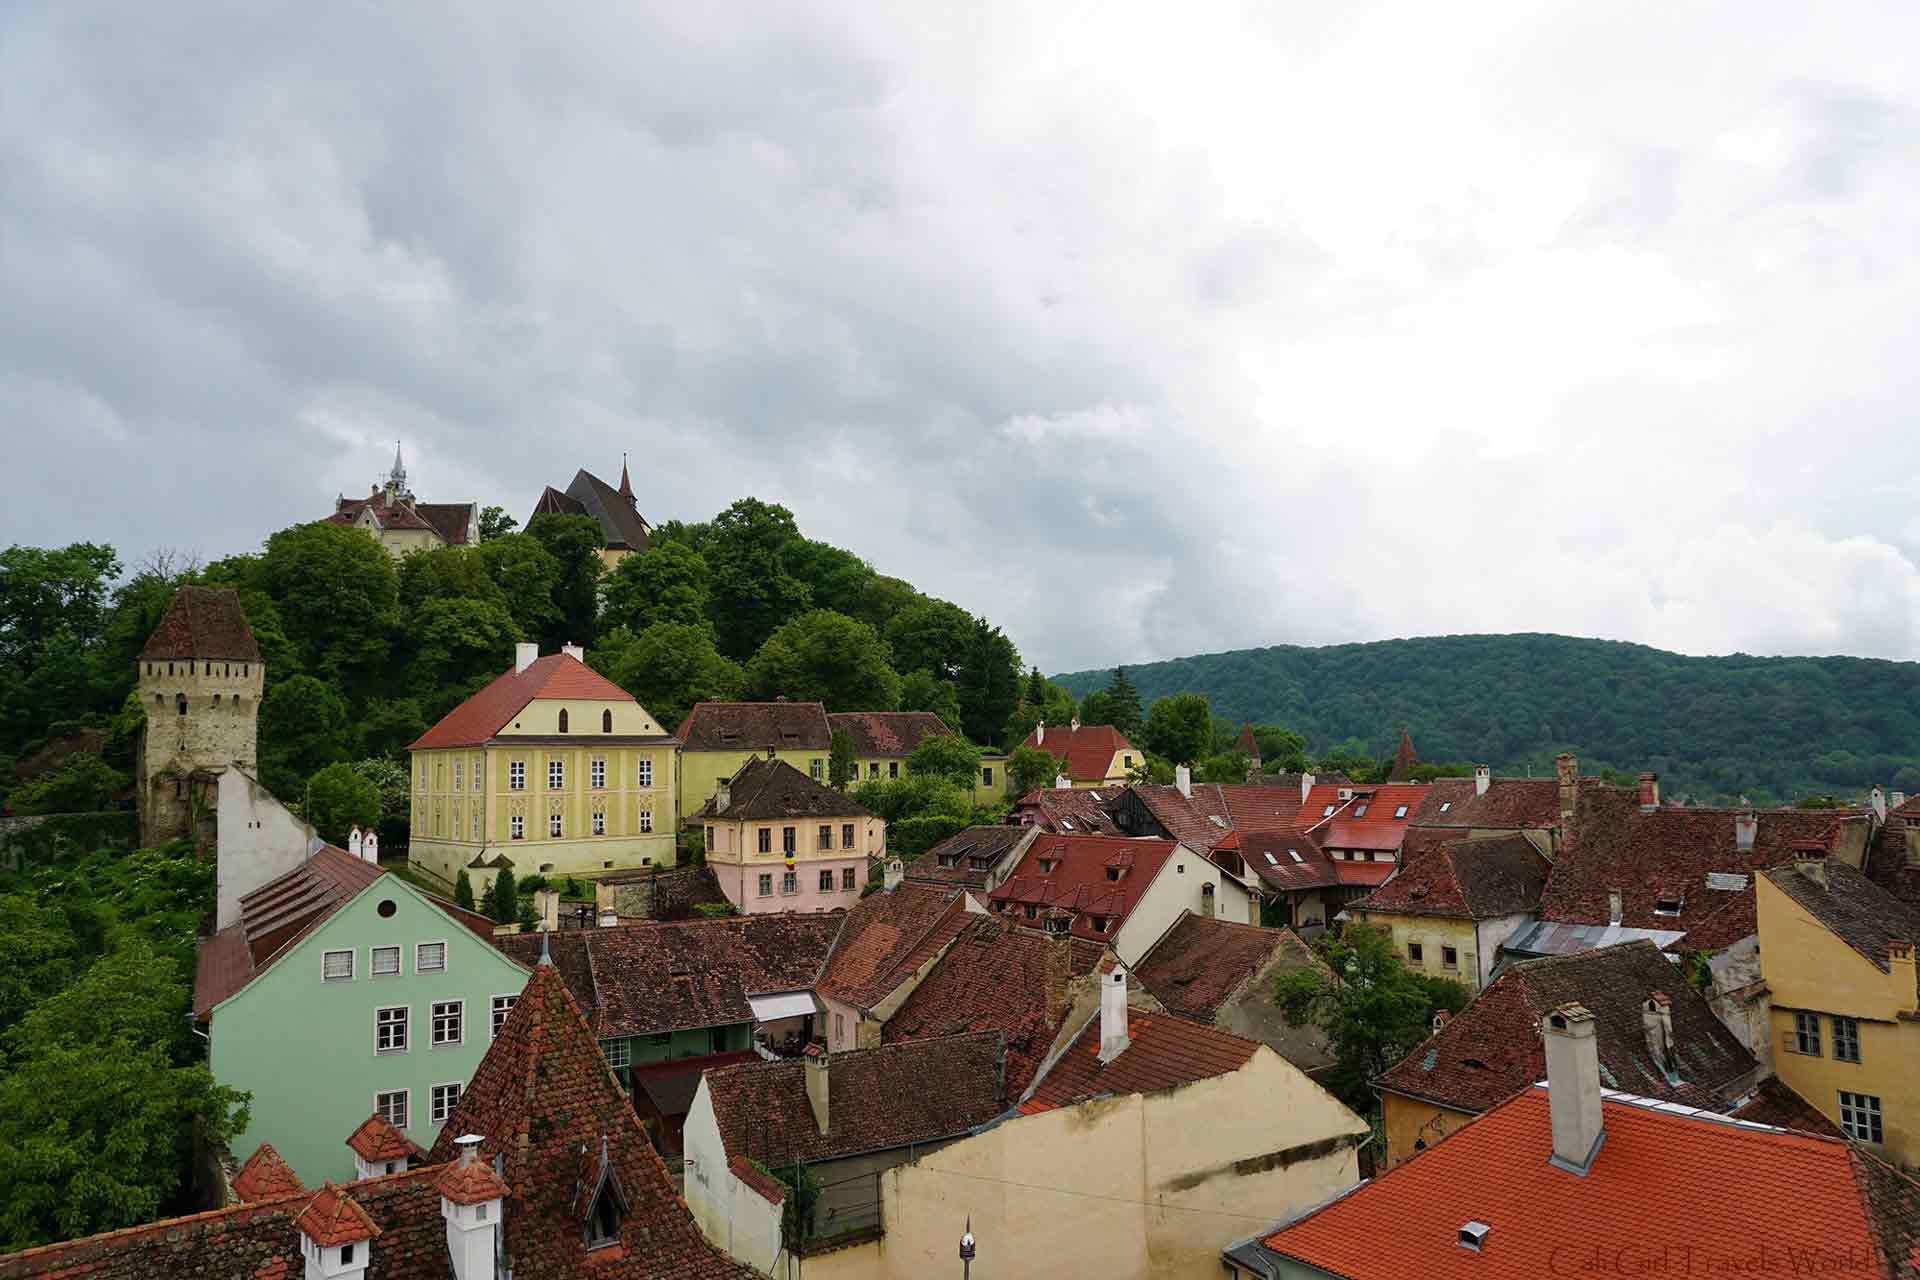 A view of buidings and a tower on a hilltop in Sighisoara, Romania.